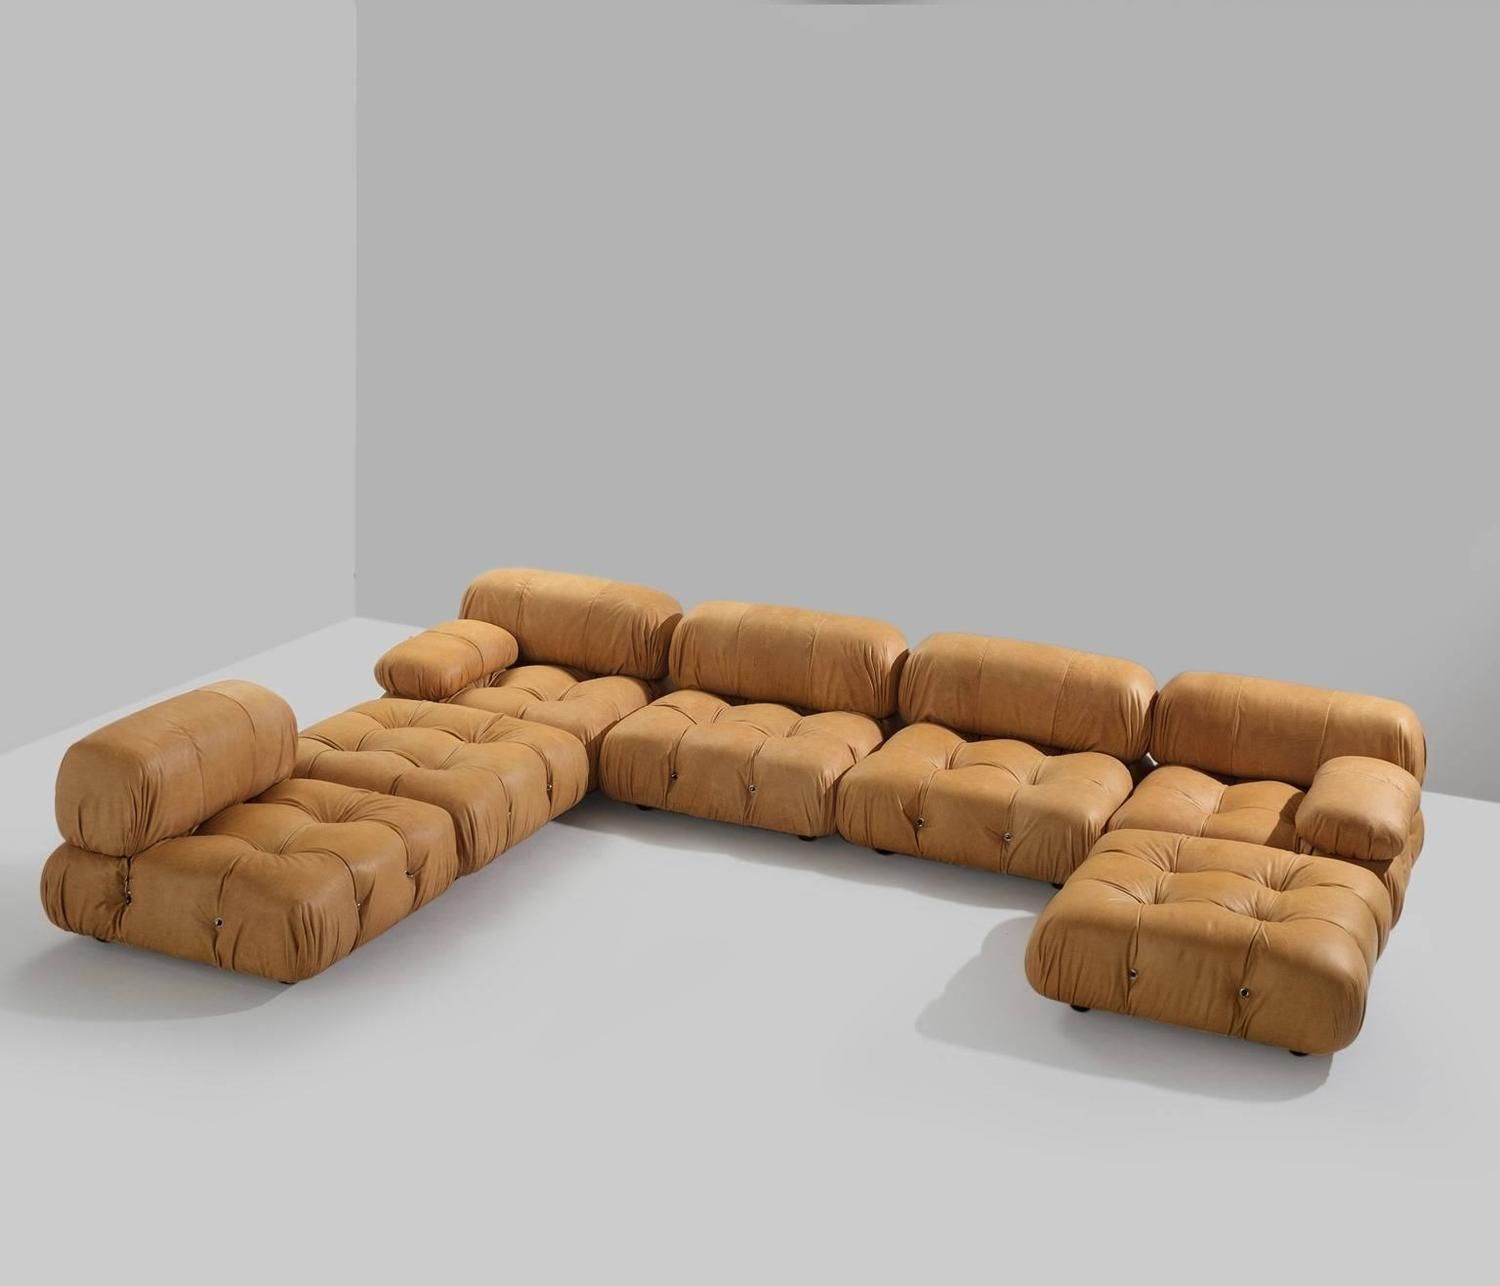 Mario Bellini Sectional Camaleonda Sofa In Cognac Leather 1stdibs Com Italian Leather Sofa Leather Sofa Sofa Design